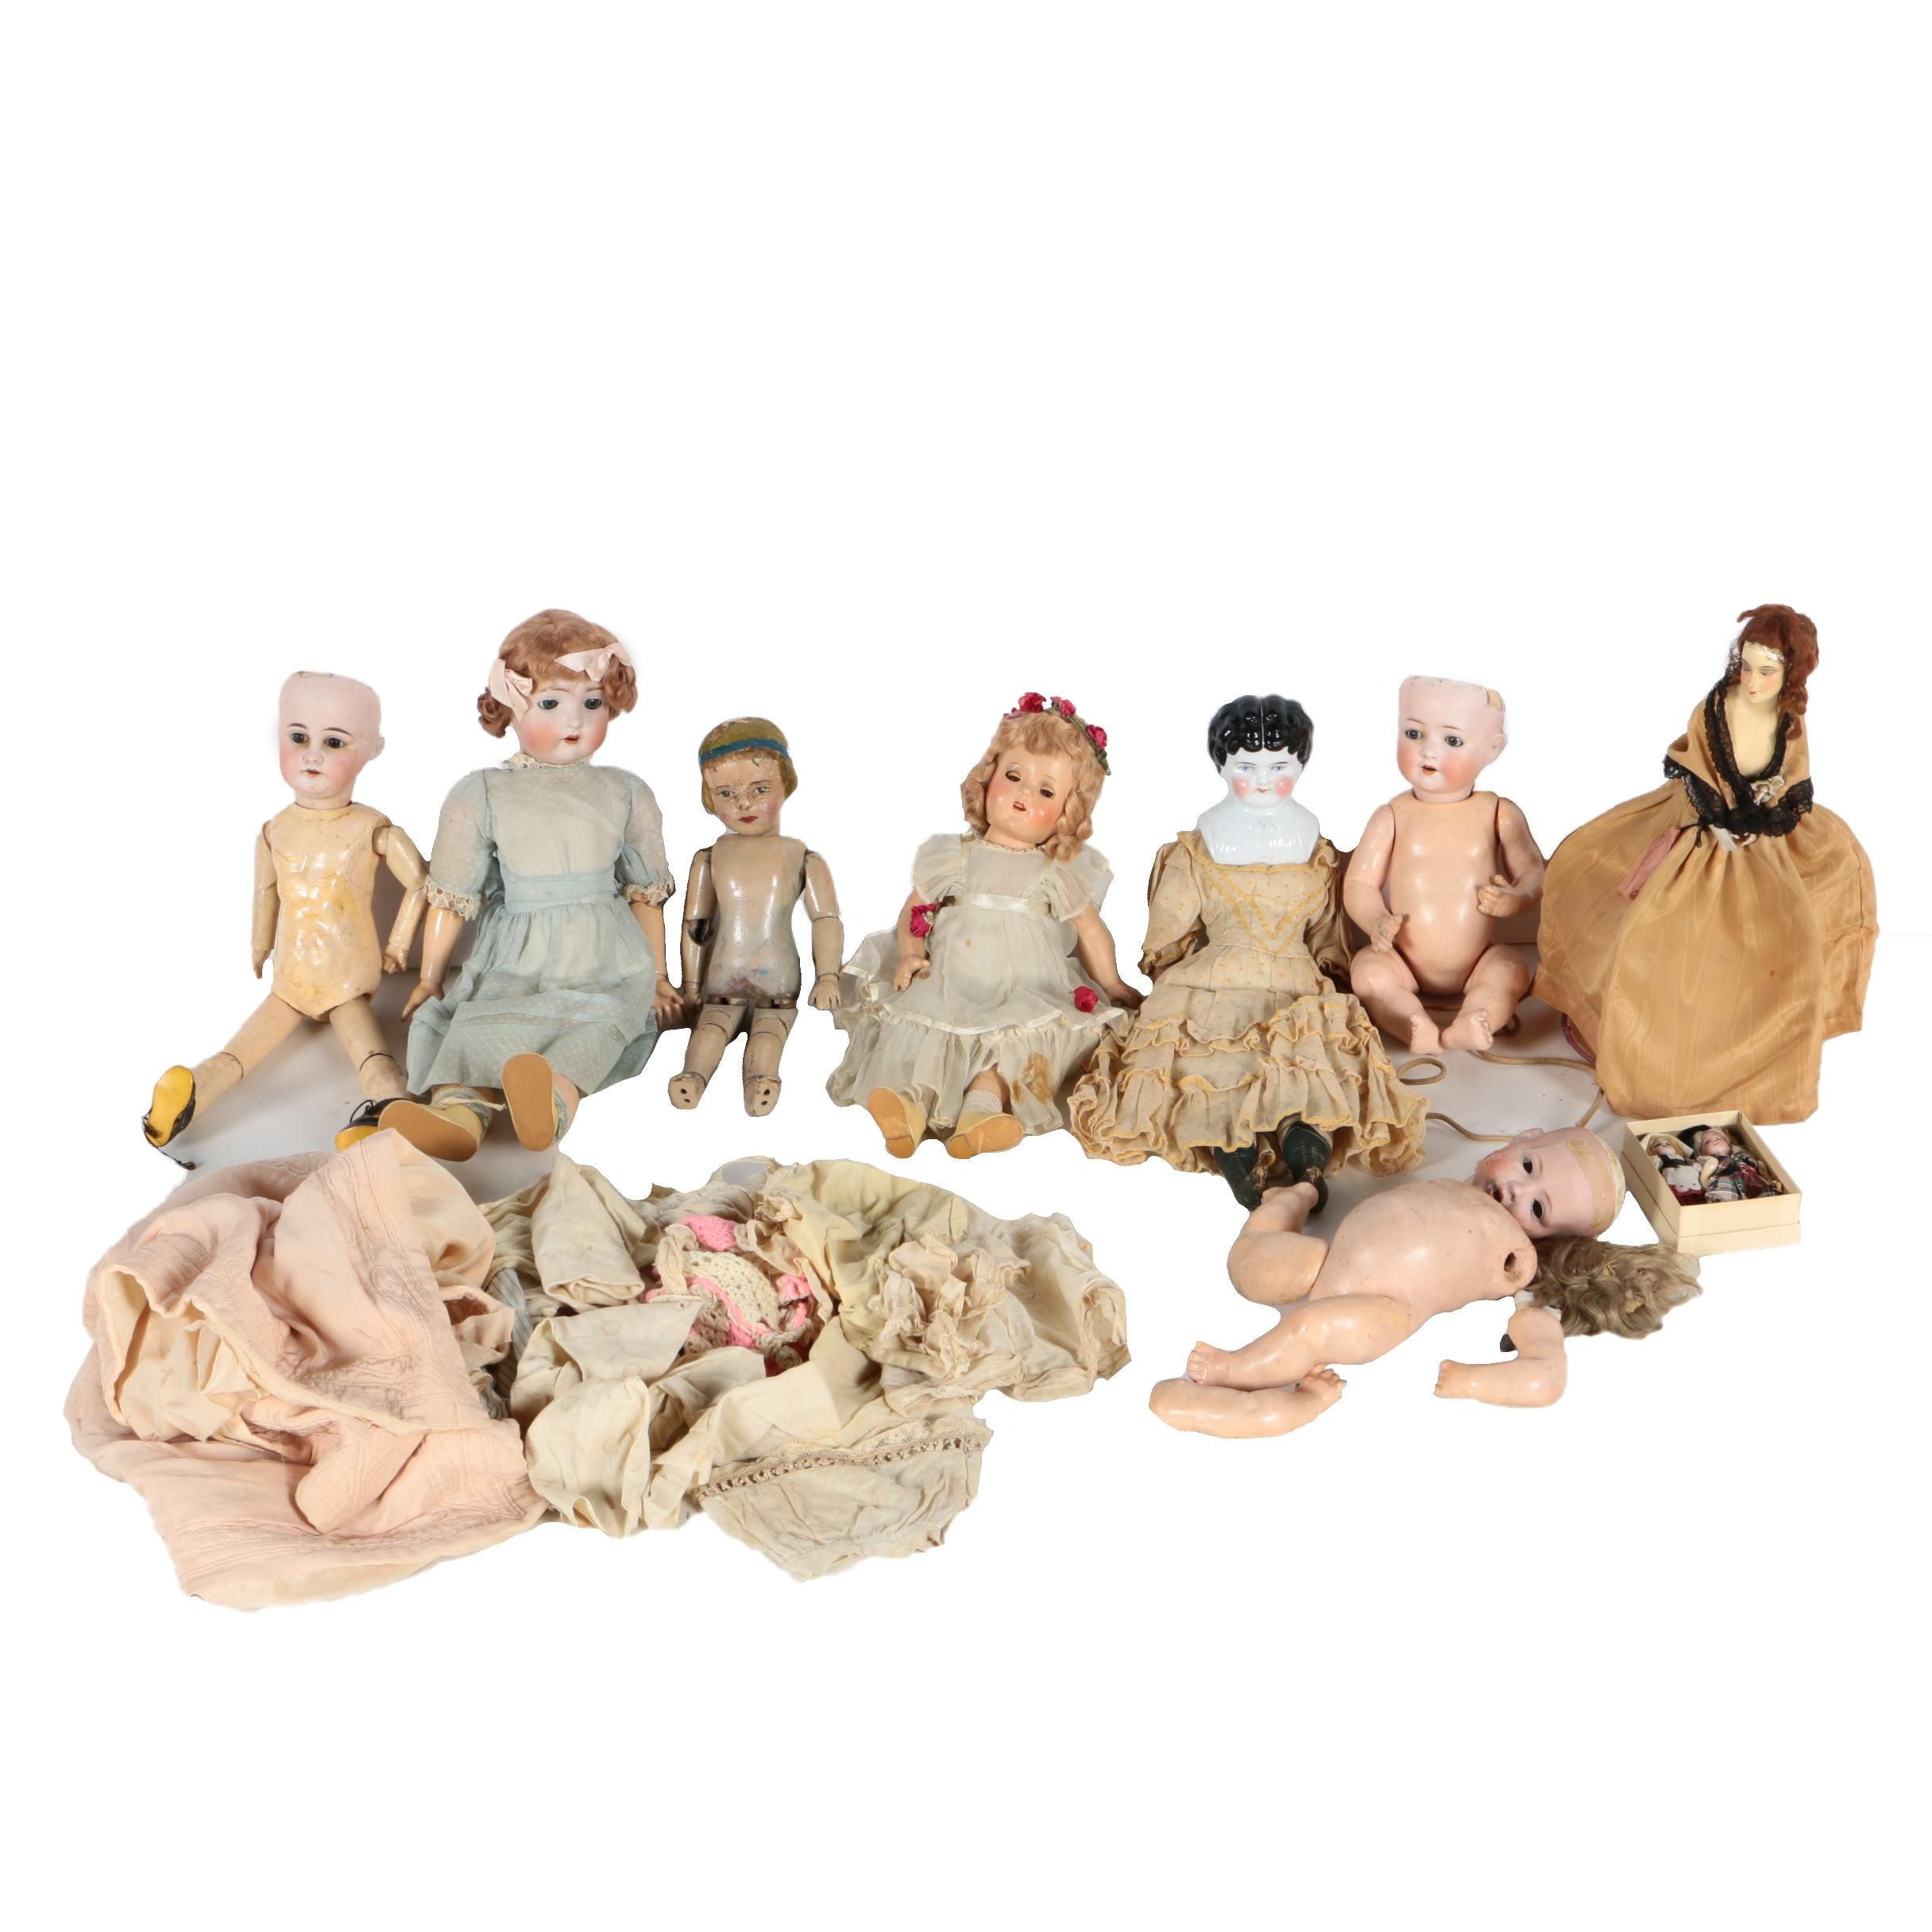 Antique Bisque and Composition Dolls Featuring J.D.K. Kestner and Heubach